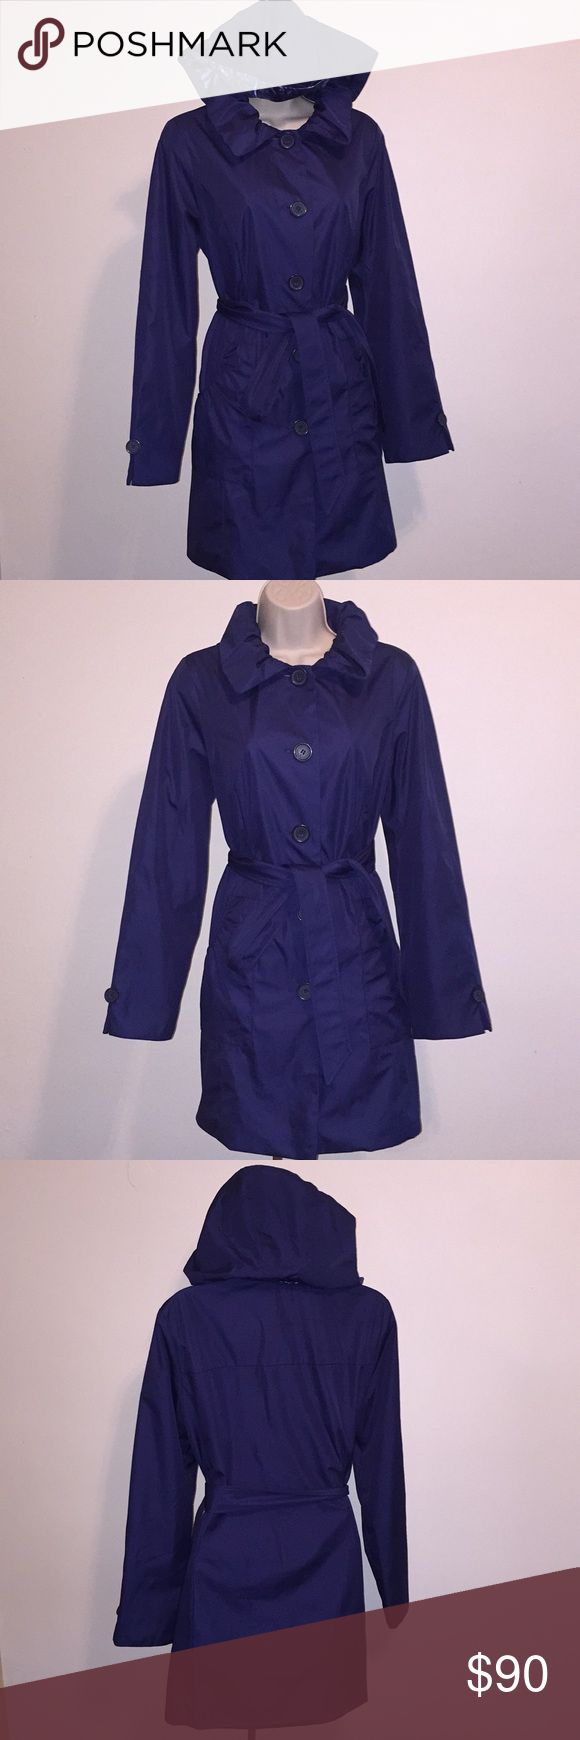 Dennis basso rain coat bleu small NWOT Dennis by Dennis basso raincoat small size blue color this is a hooded raincoat has a zipper around the neck water resistant button down on front two pockets and a belt fabric content SHELL & LINING 100% Polyester. Very warm comfortable and cute coat by Dennis Dennis Basso Jackets & Coats